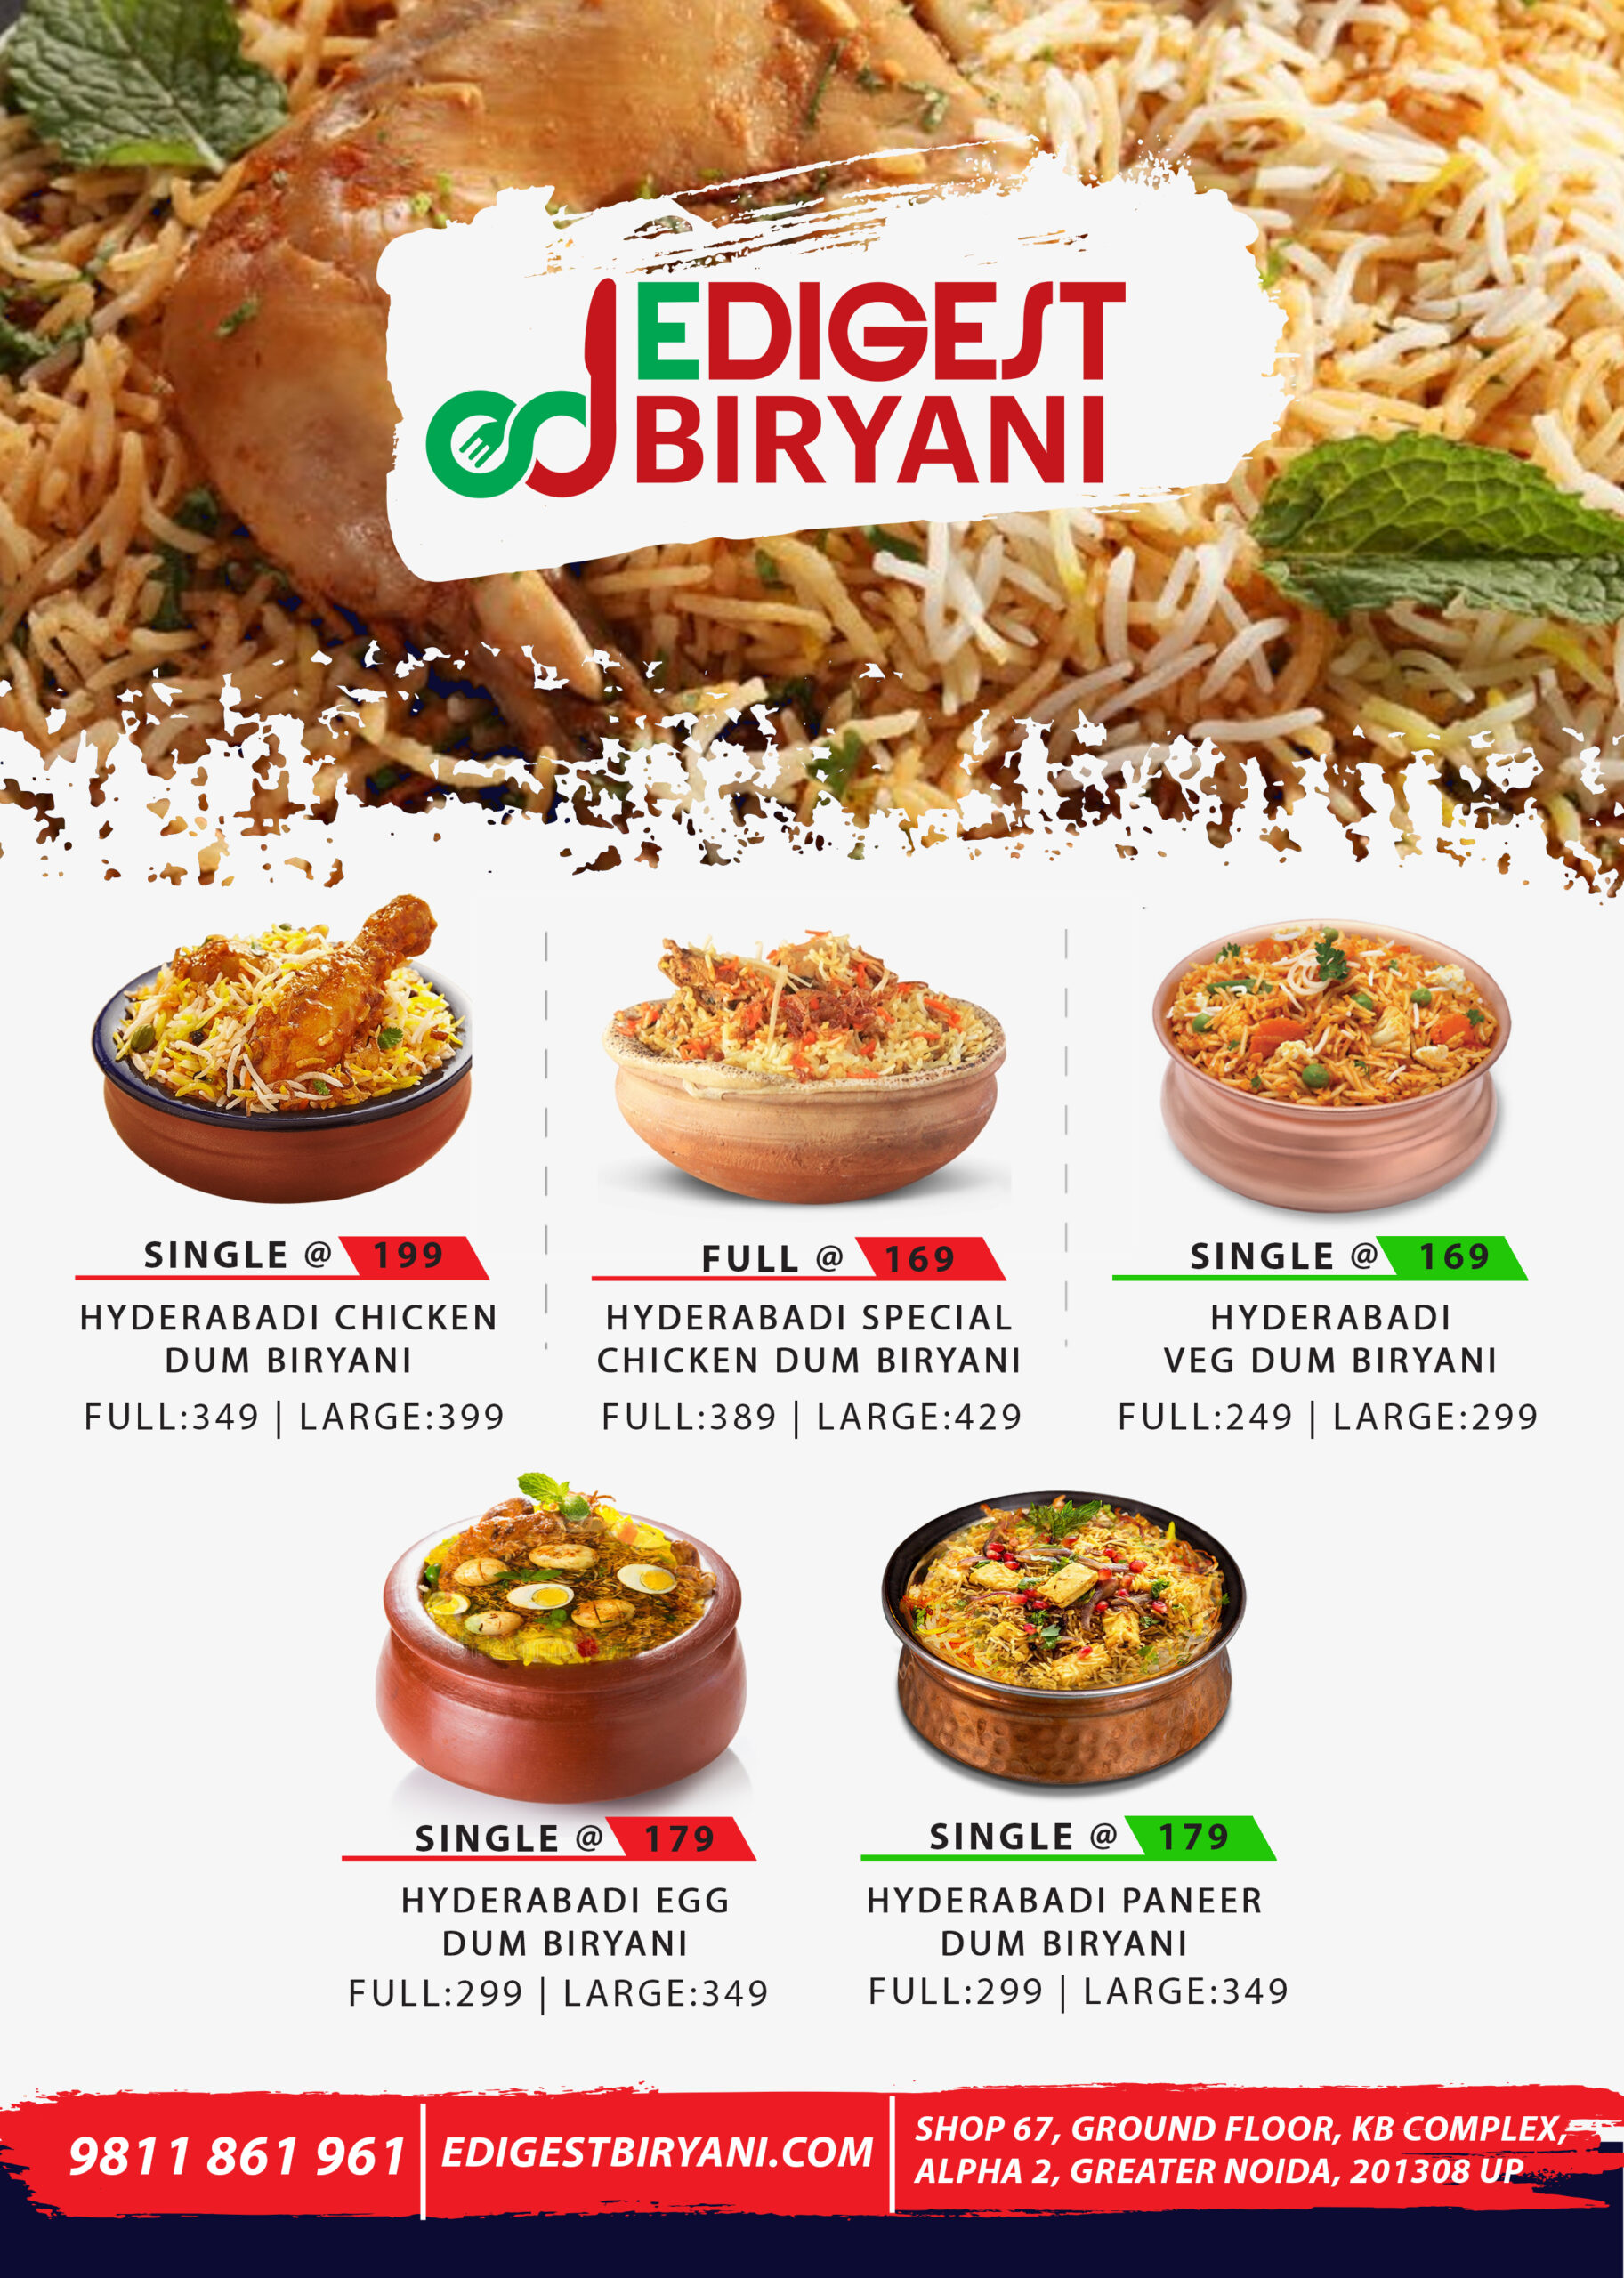 E-Digest Biryani<div style='clear:both;width:100%;height:0px;'></div><span class='cat'>Graphic Design</span>